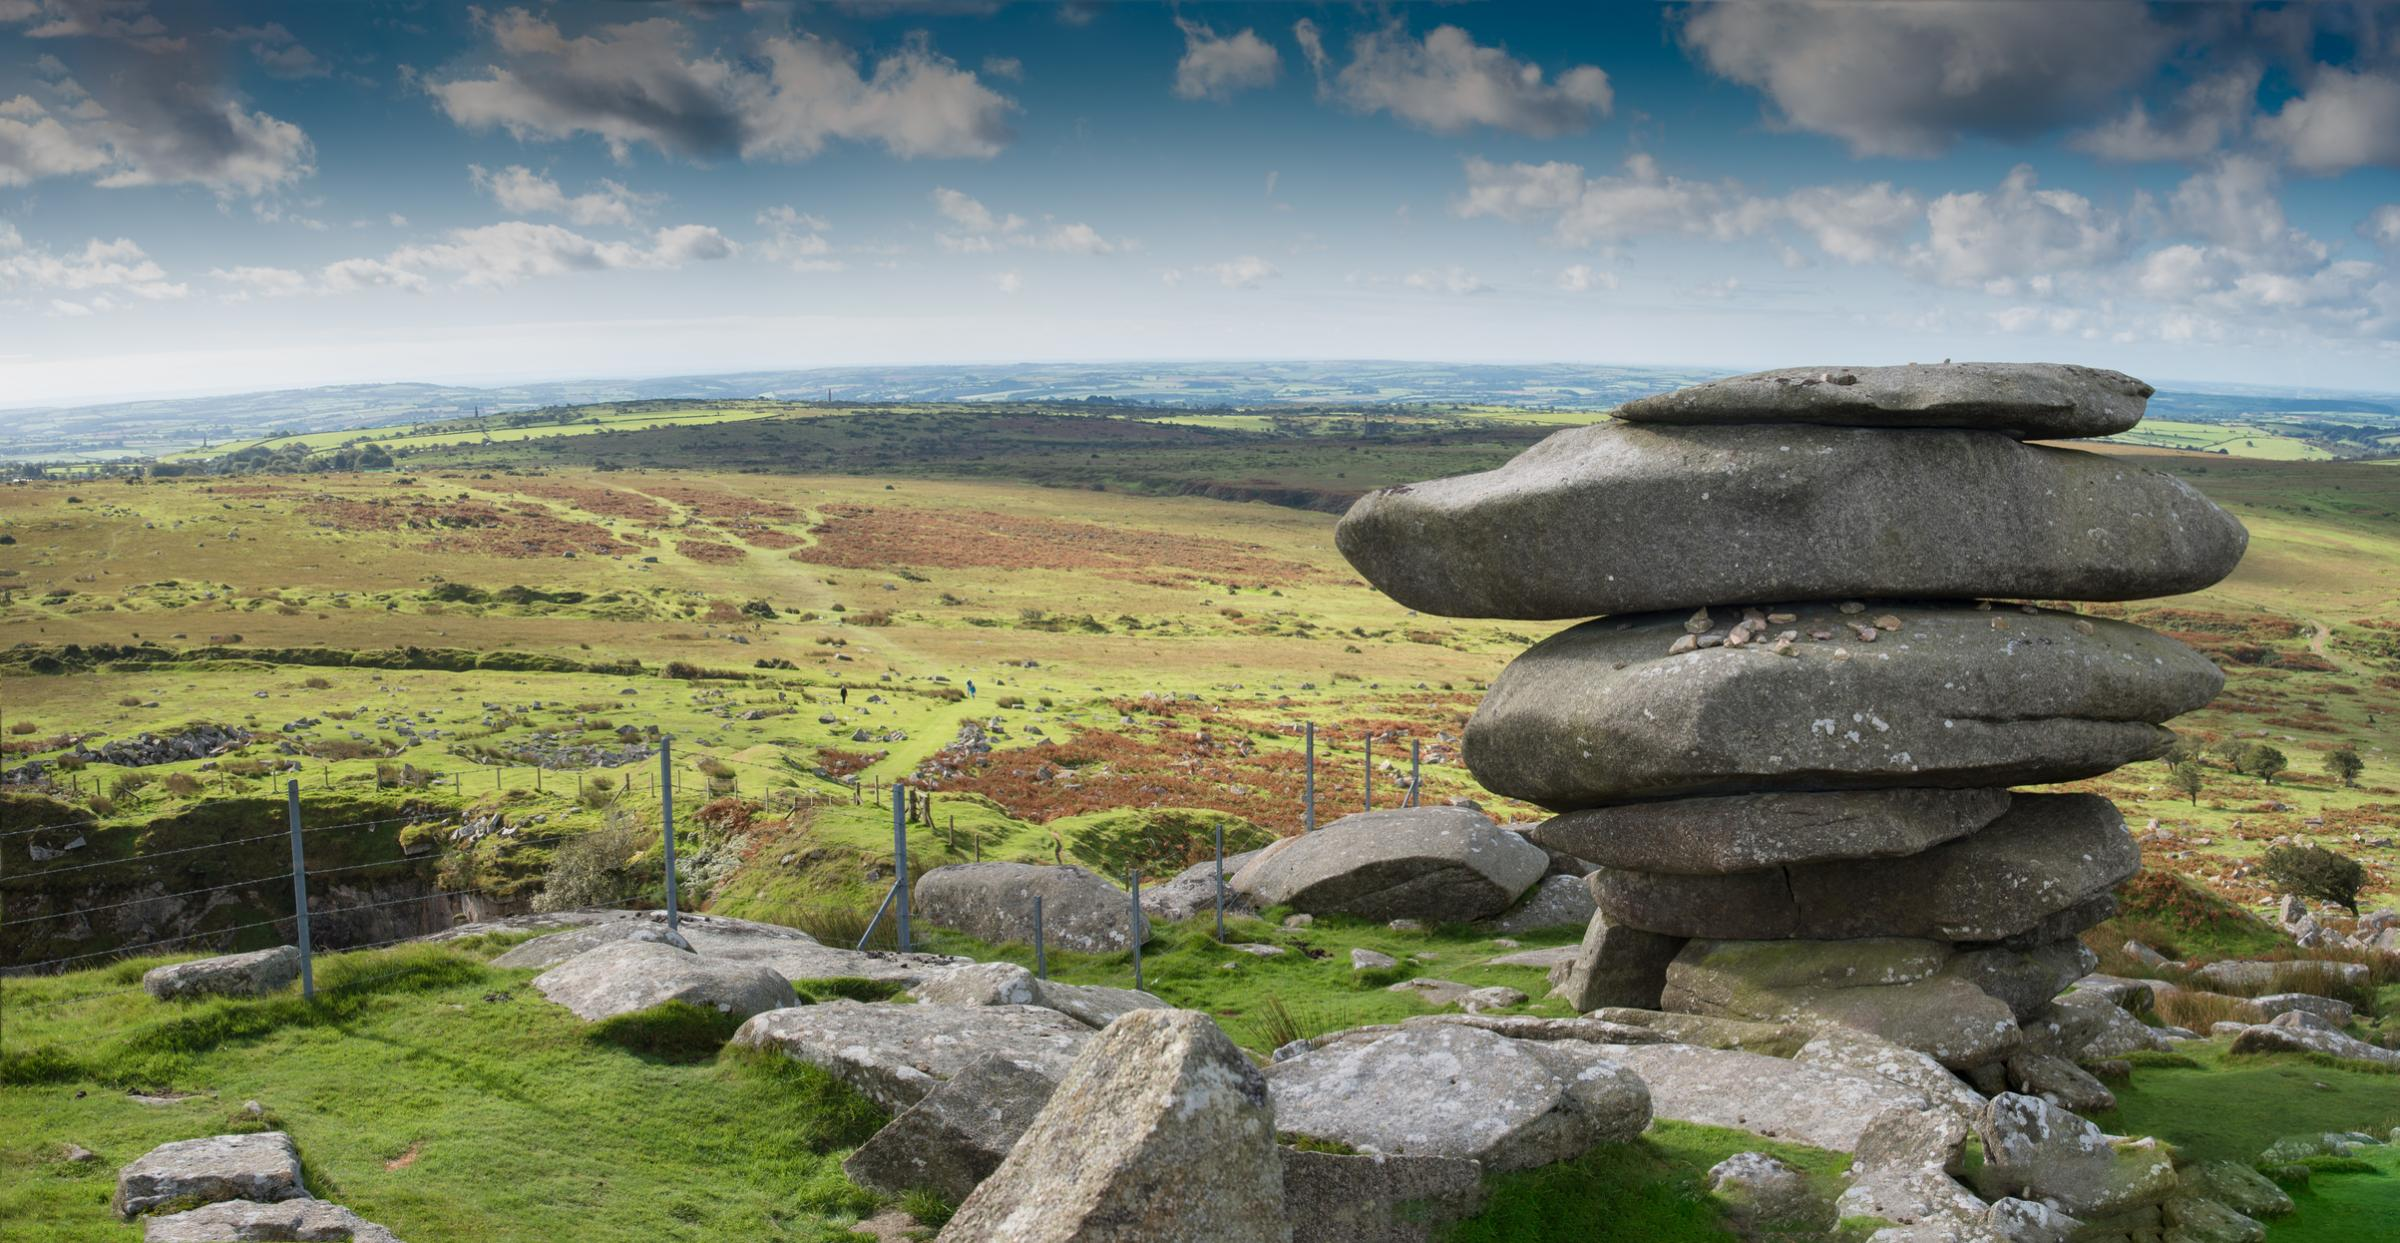 The Cheeswring, a natural rock formation on Stowe's Hill on Bodmin Moor